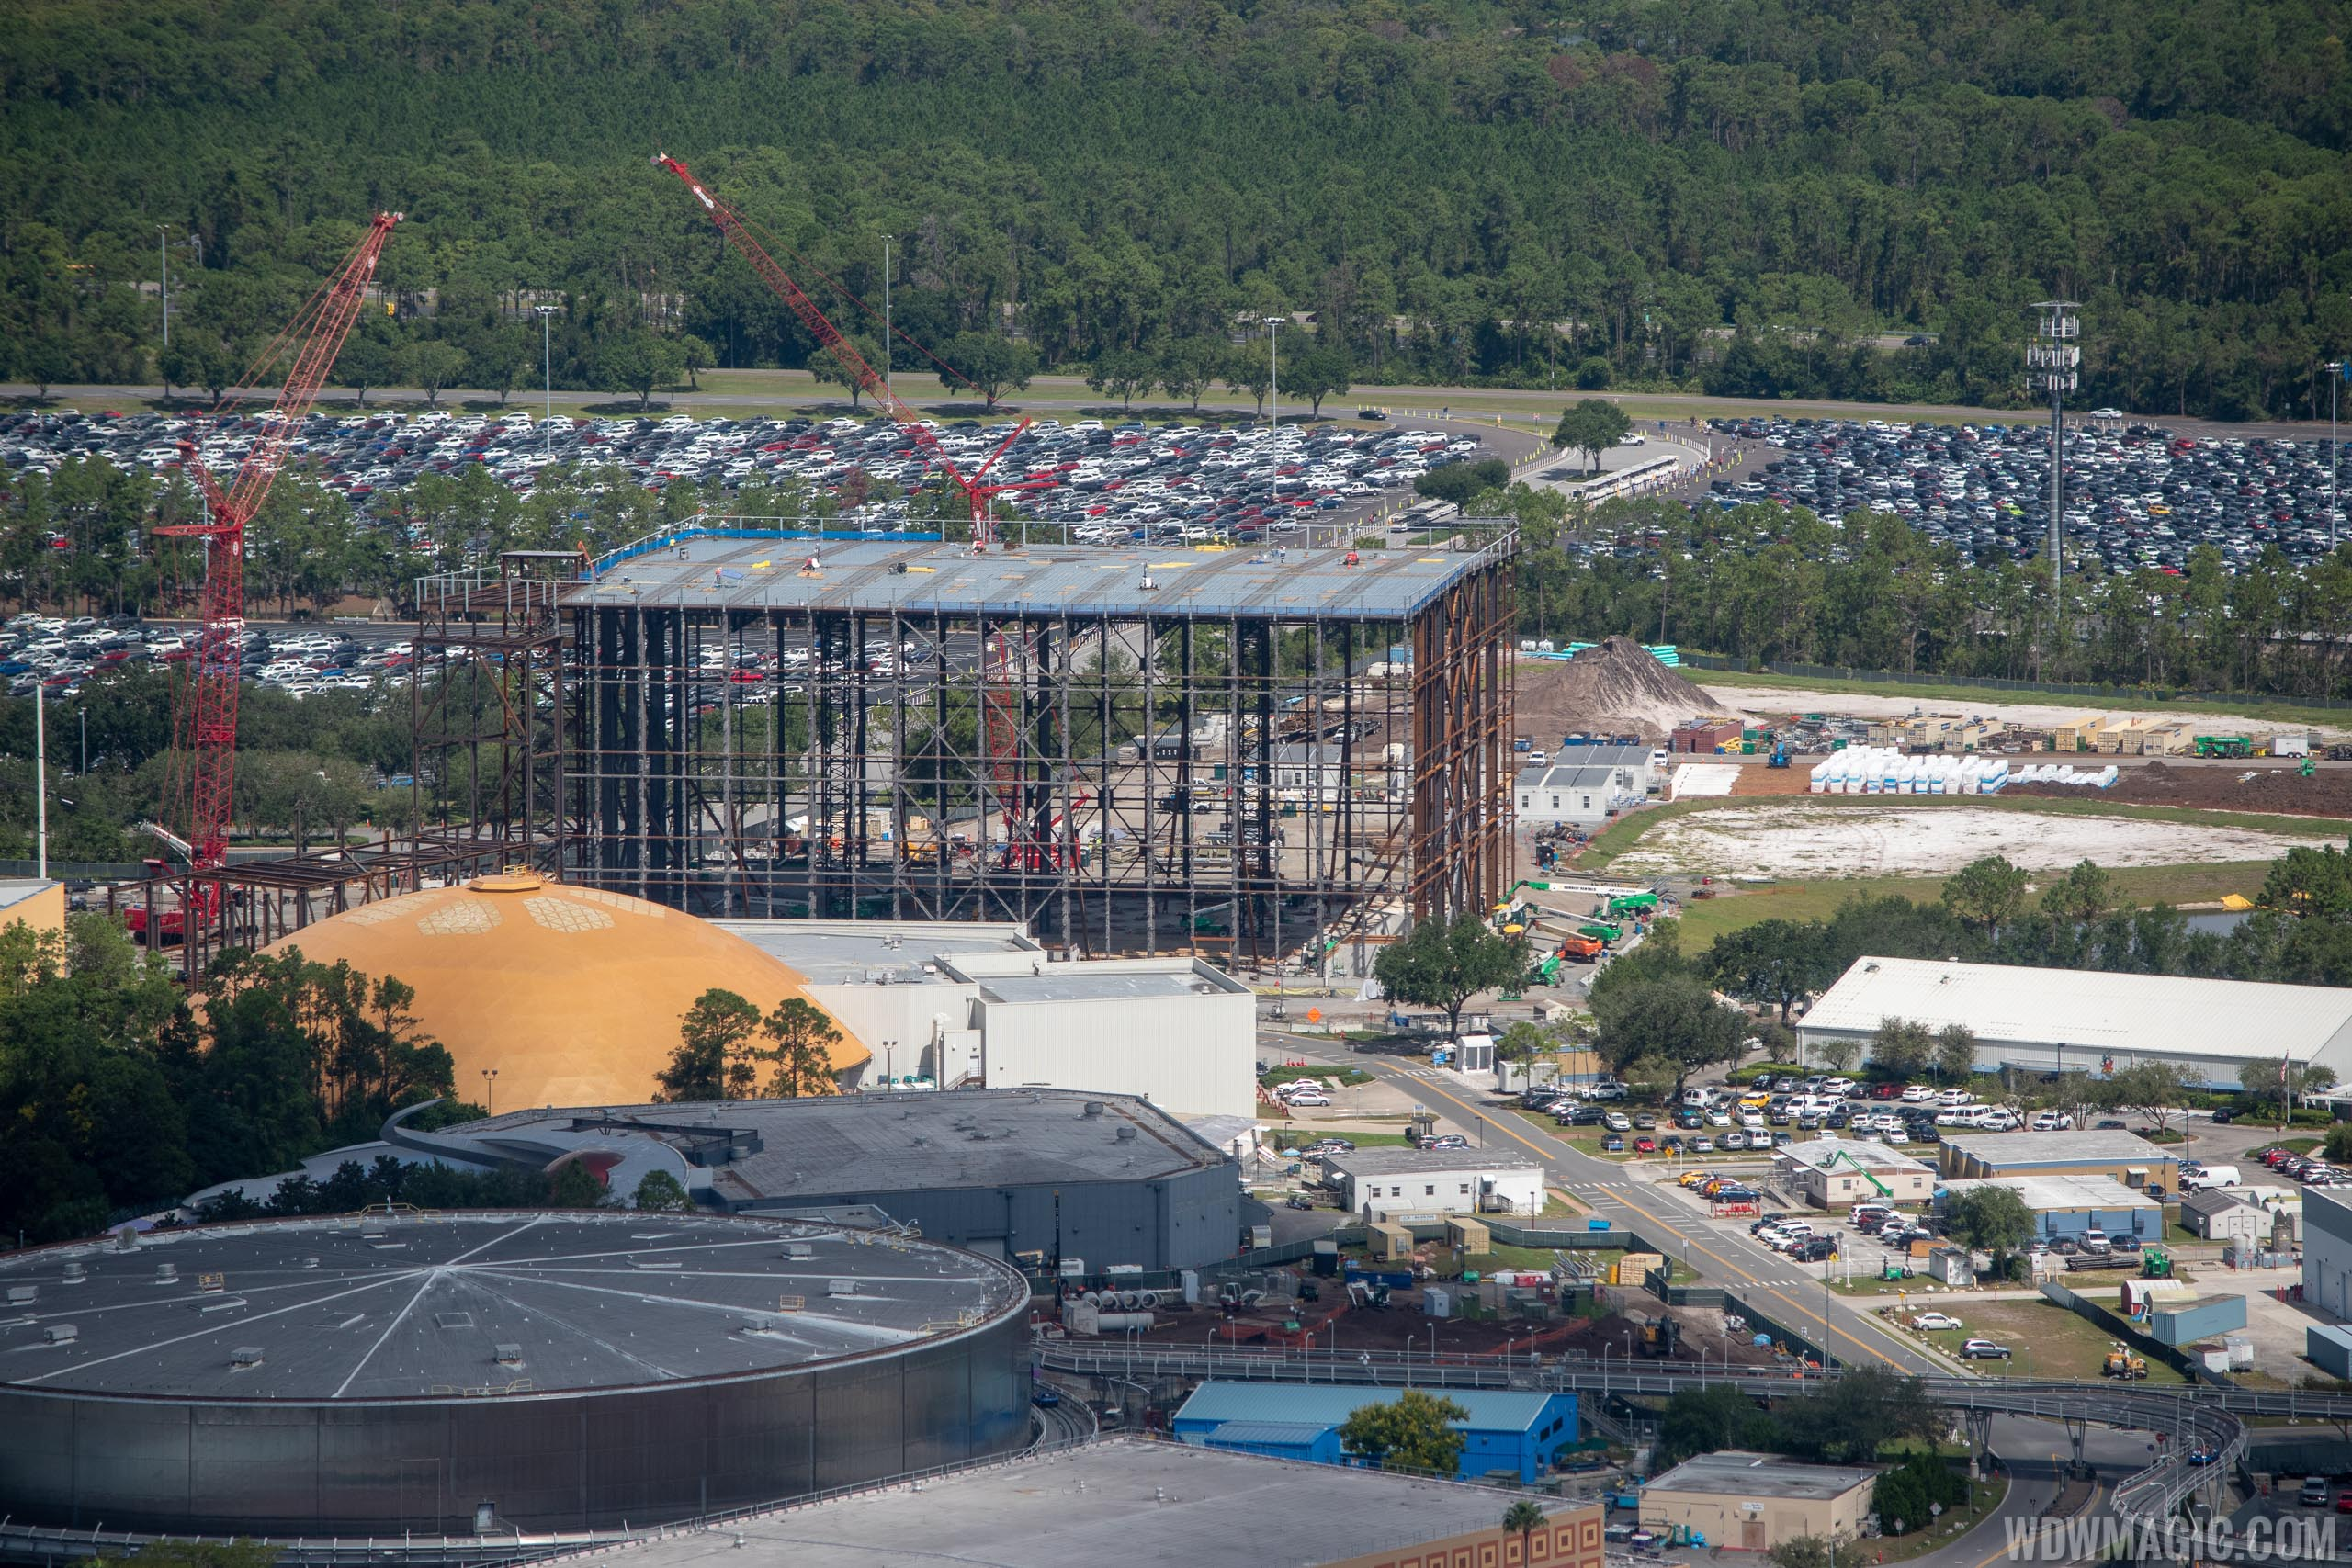 Guardians of the Galaxy construction aerial views - September 2018